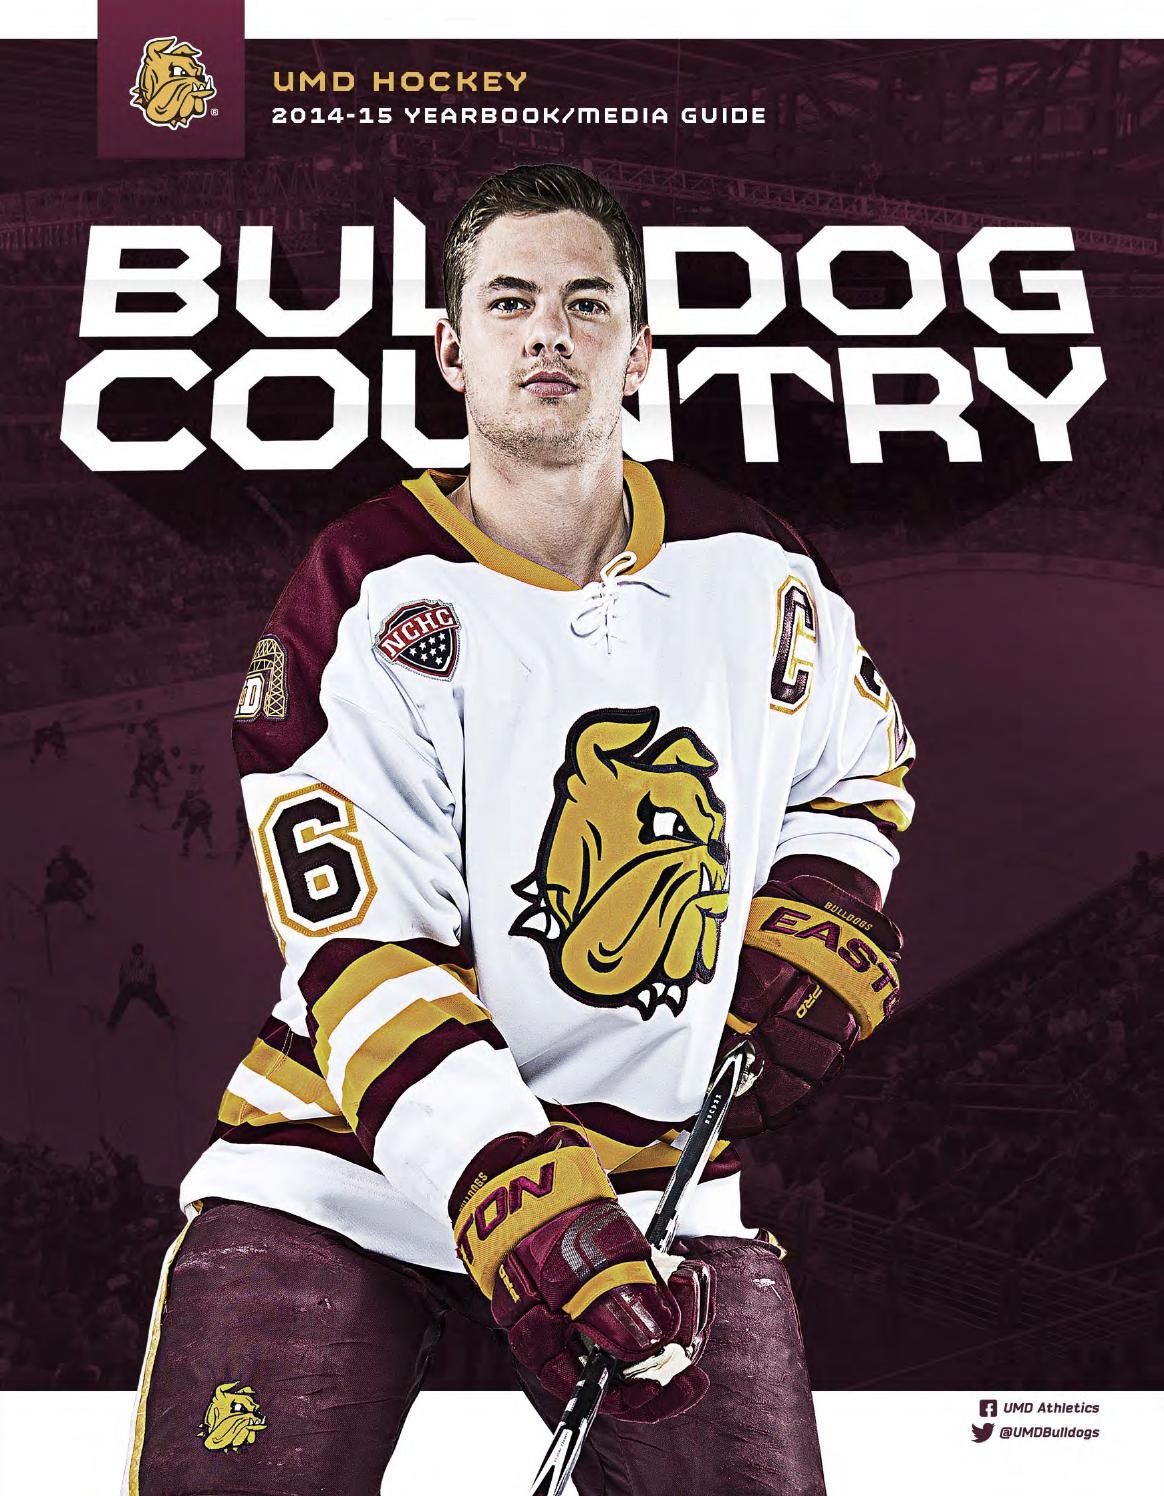 umd bulldog hockey tickets umd men s hockey media guide by umd bulldogs issuu 9806